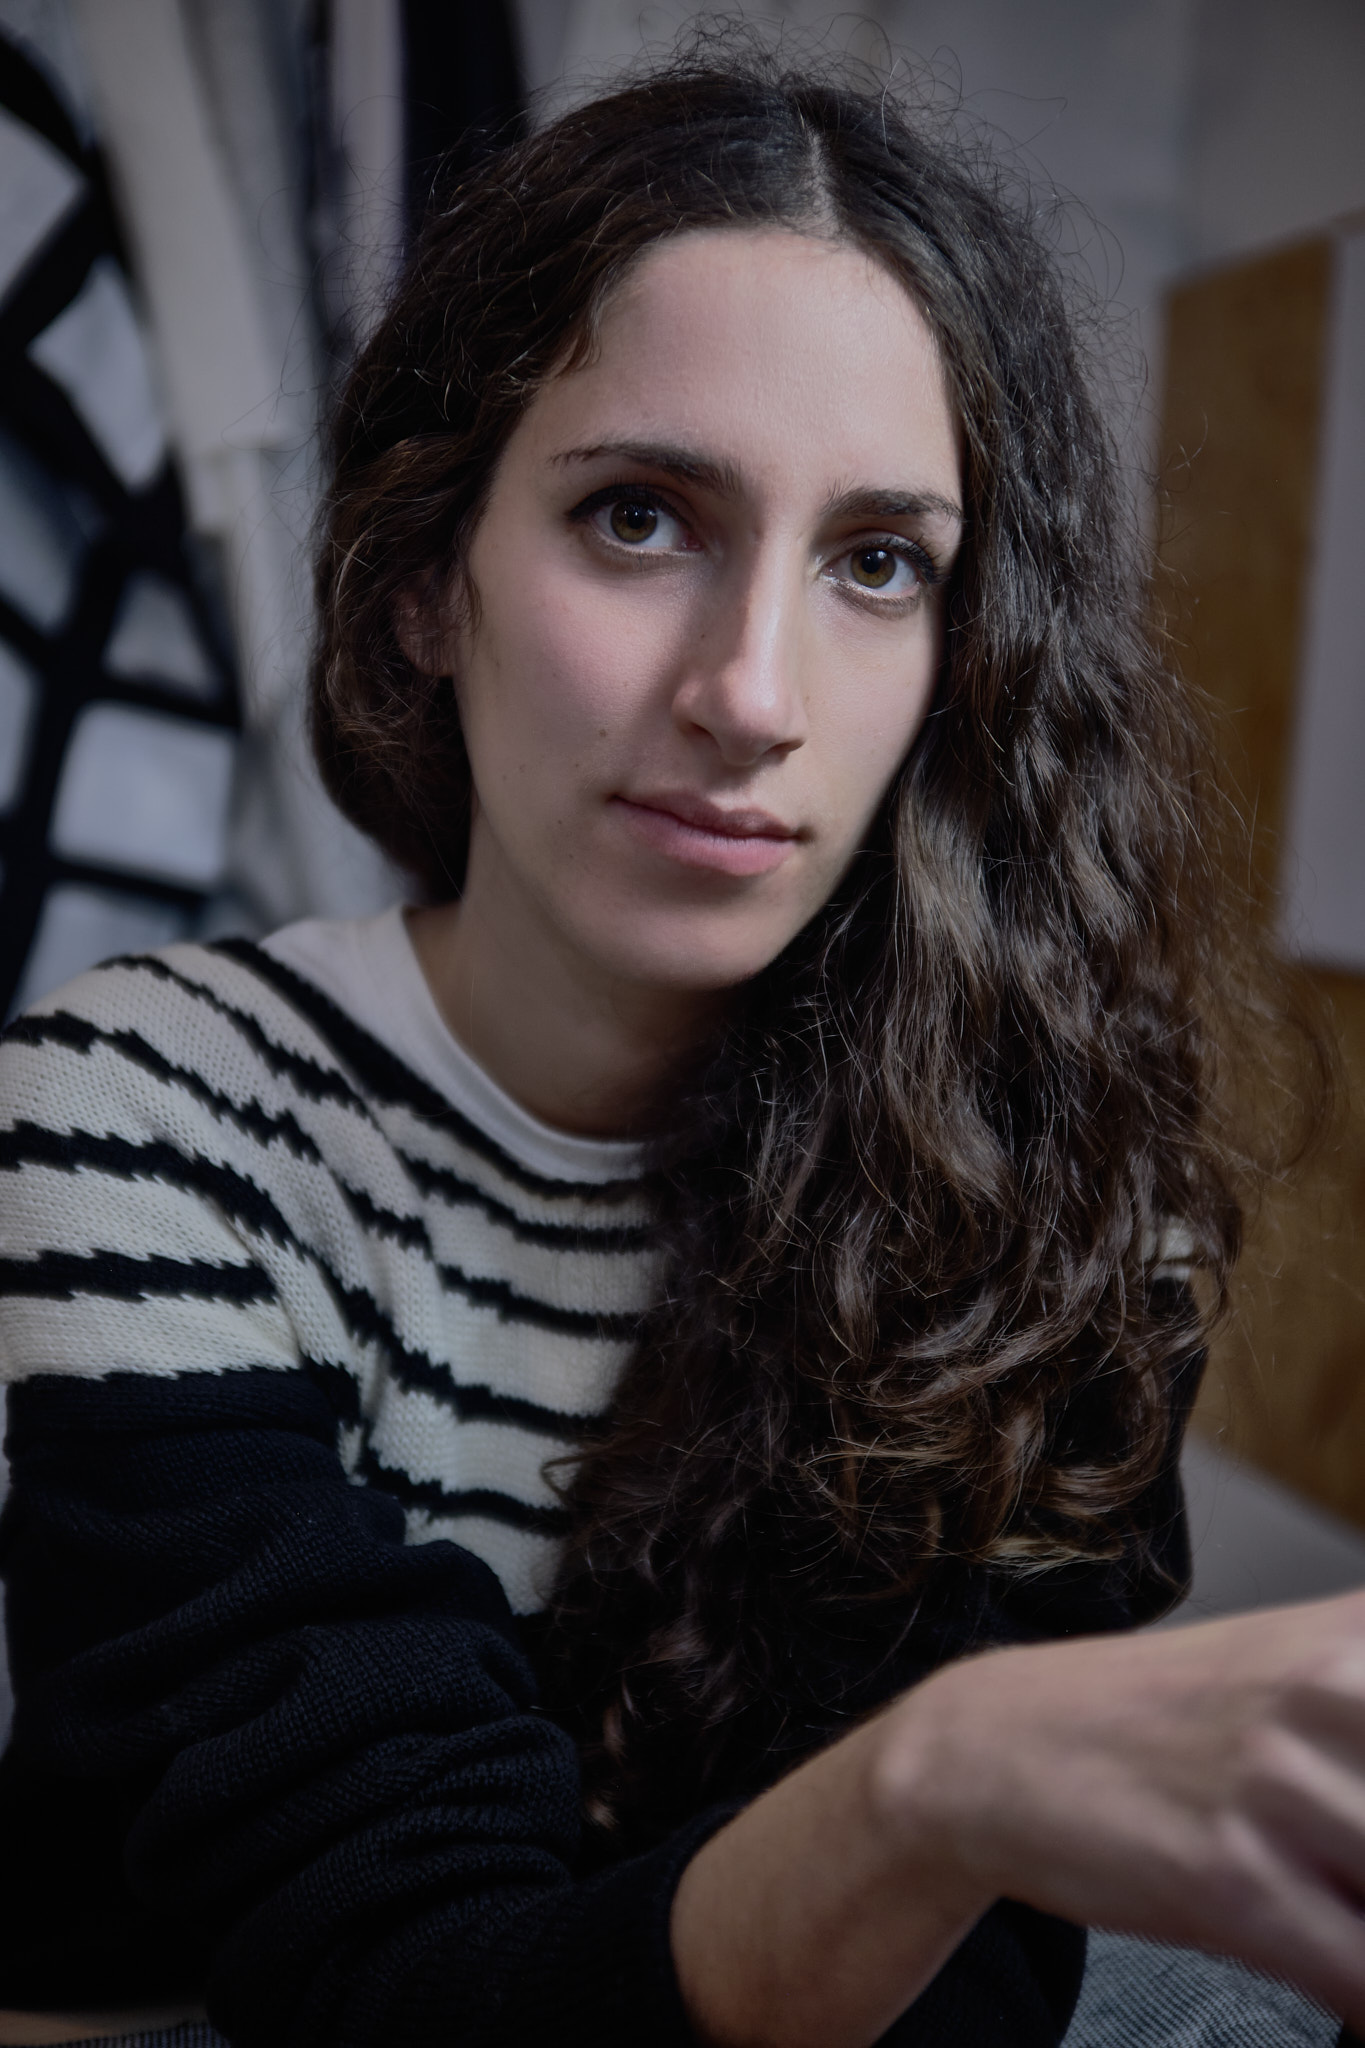 A woman with long brown hair wearing a white and black striped sweater